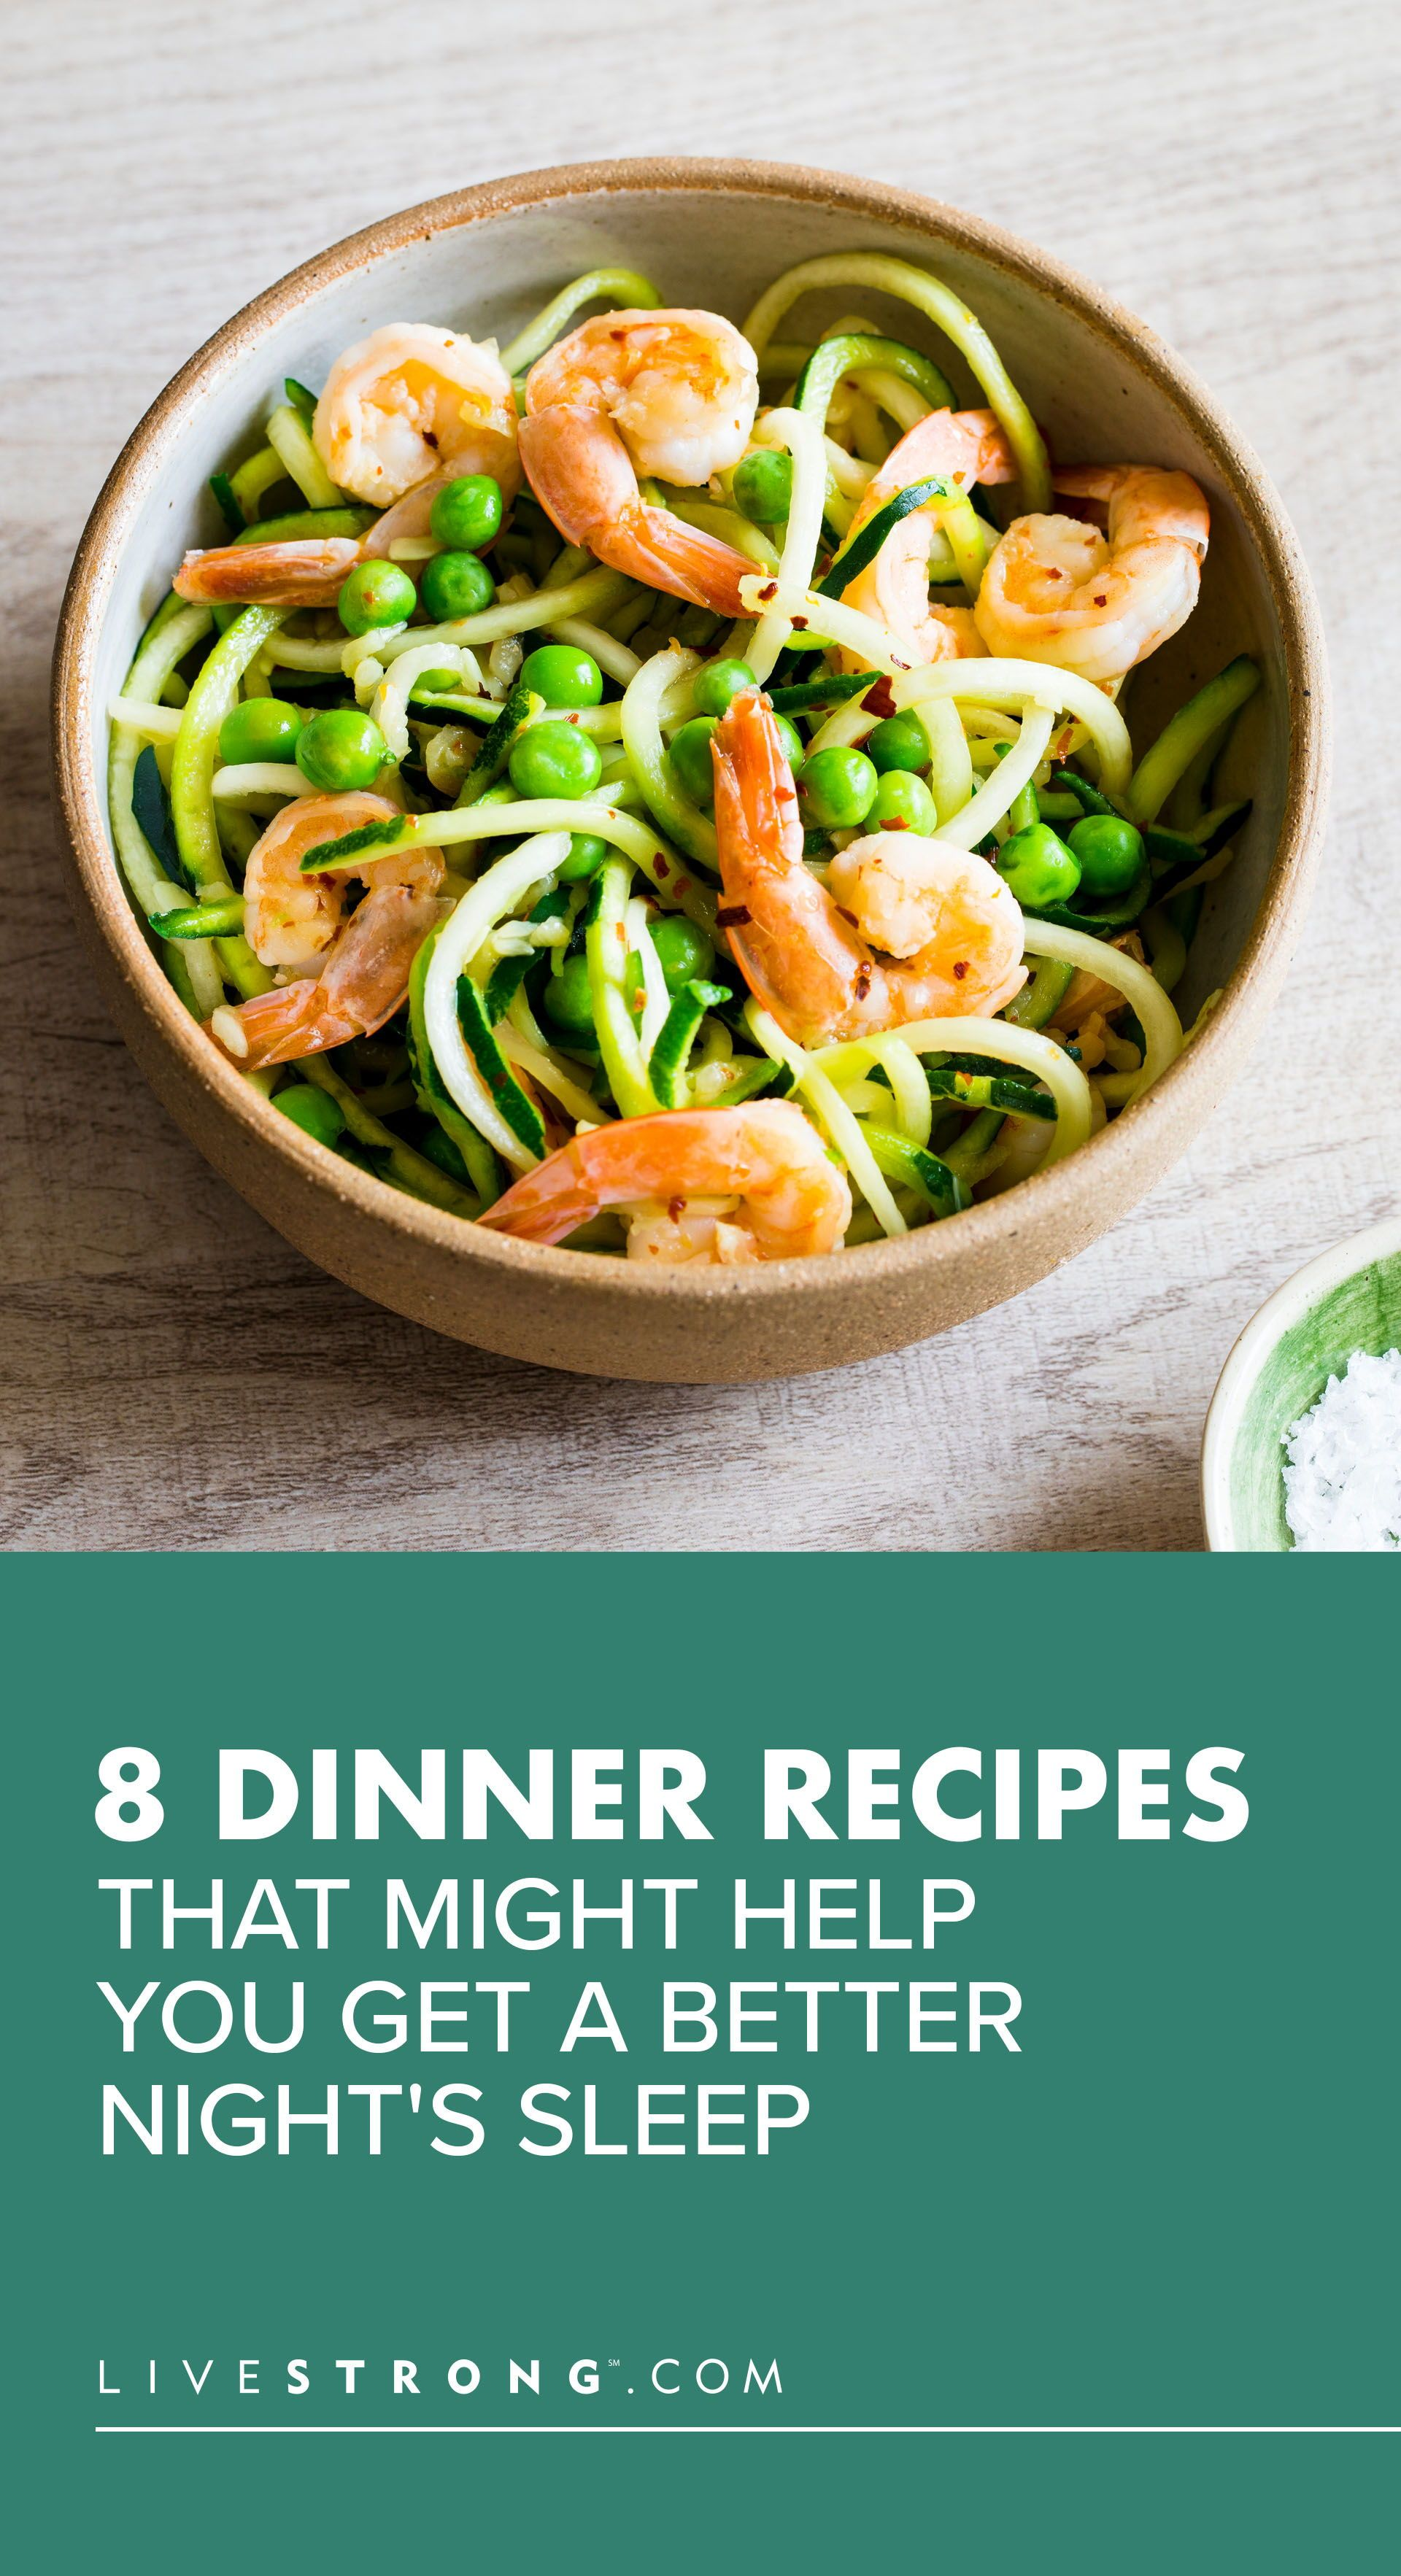 8 Dinner Recipes That Might Help You Get a Better Night's